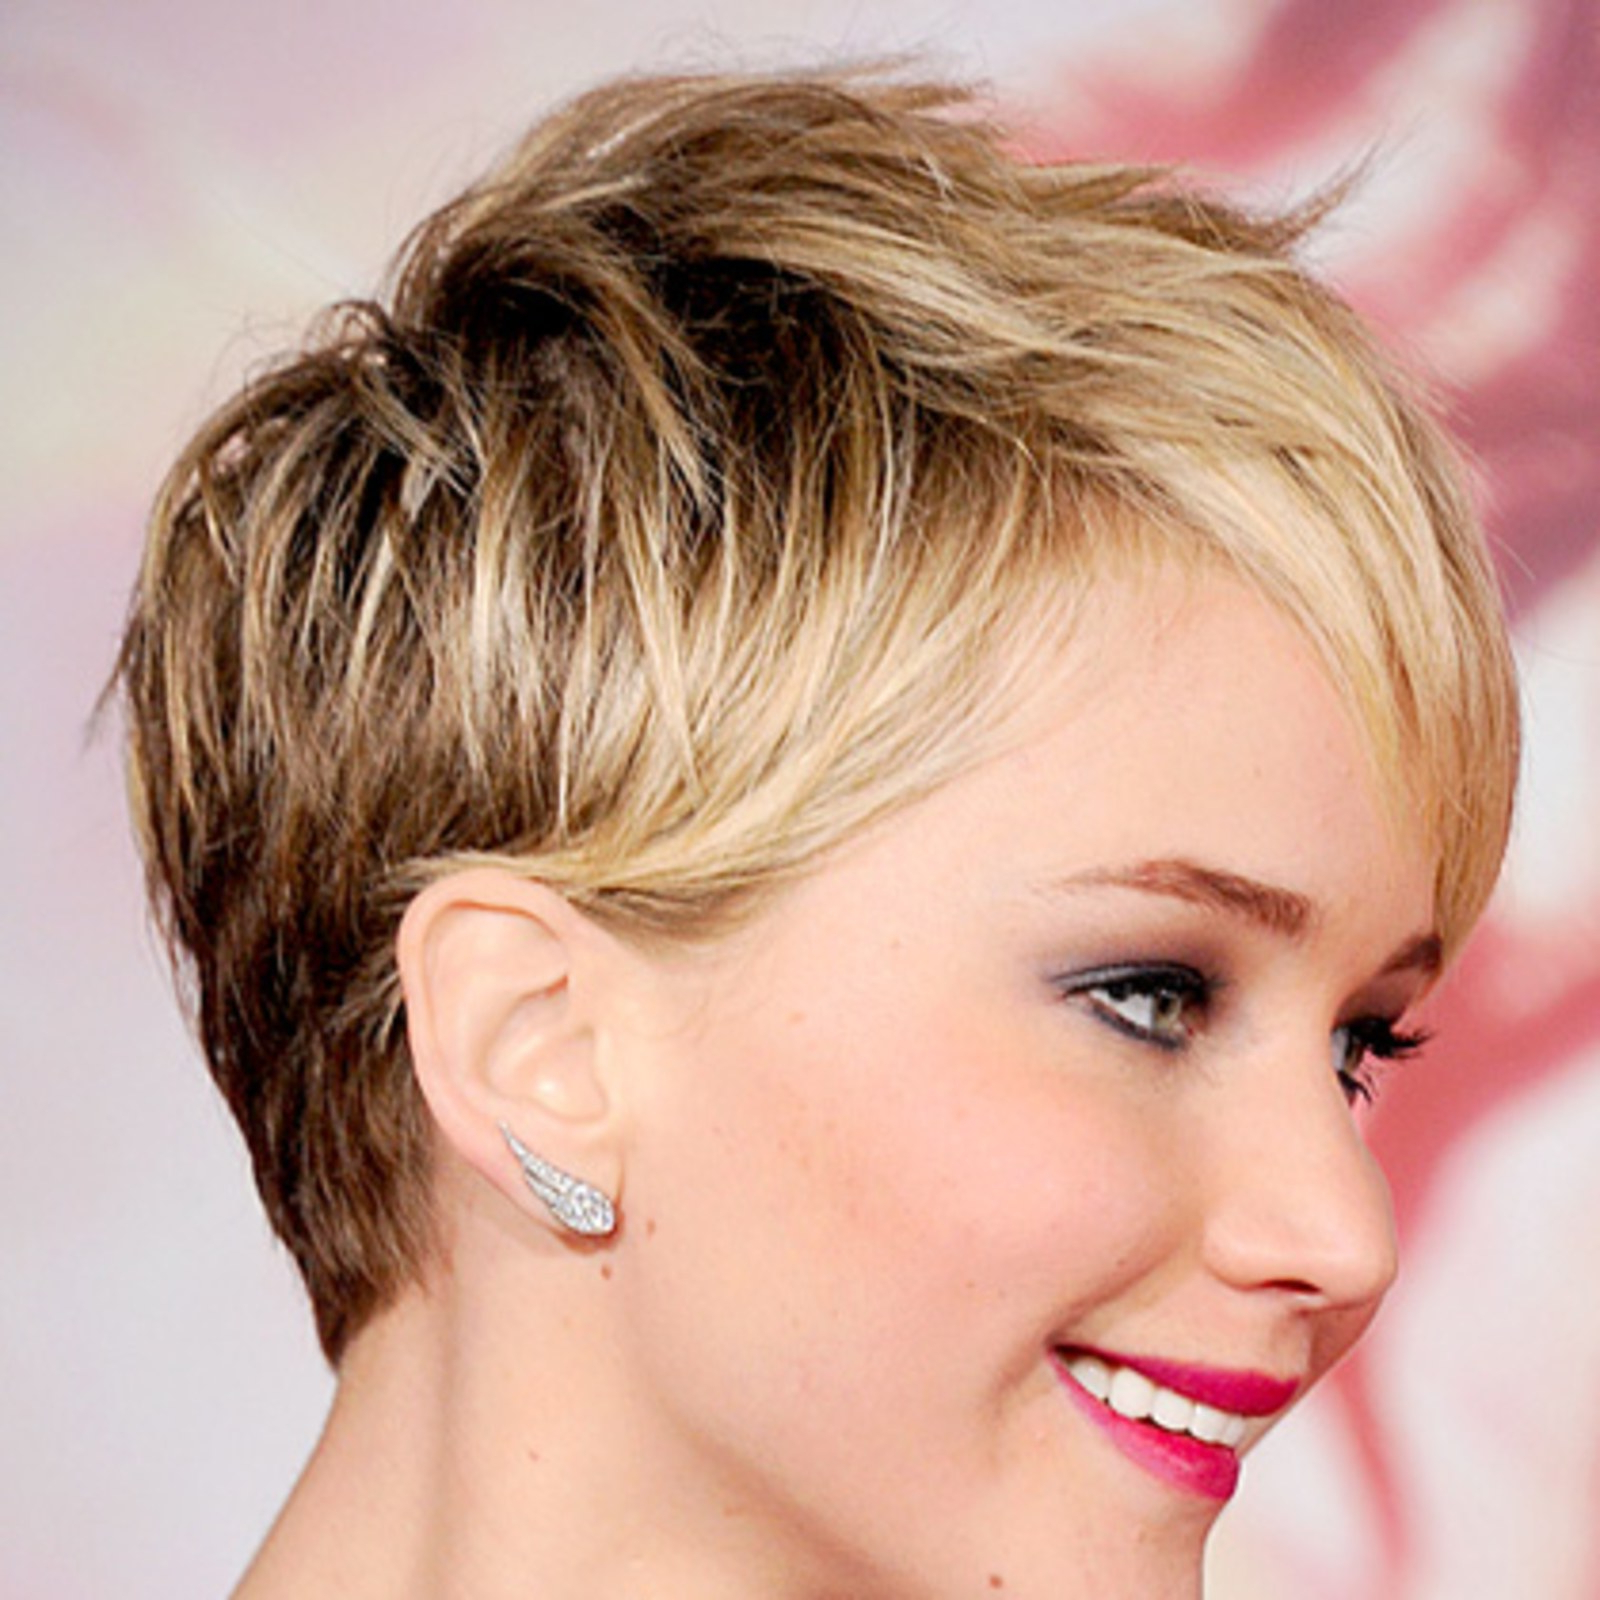 Chris Mcmillan's Top 7 Short Haircuts – Allure Pertaining To Jennifer Lawrence Short Hairstyles (View 16 of 25)